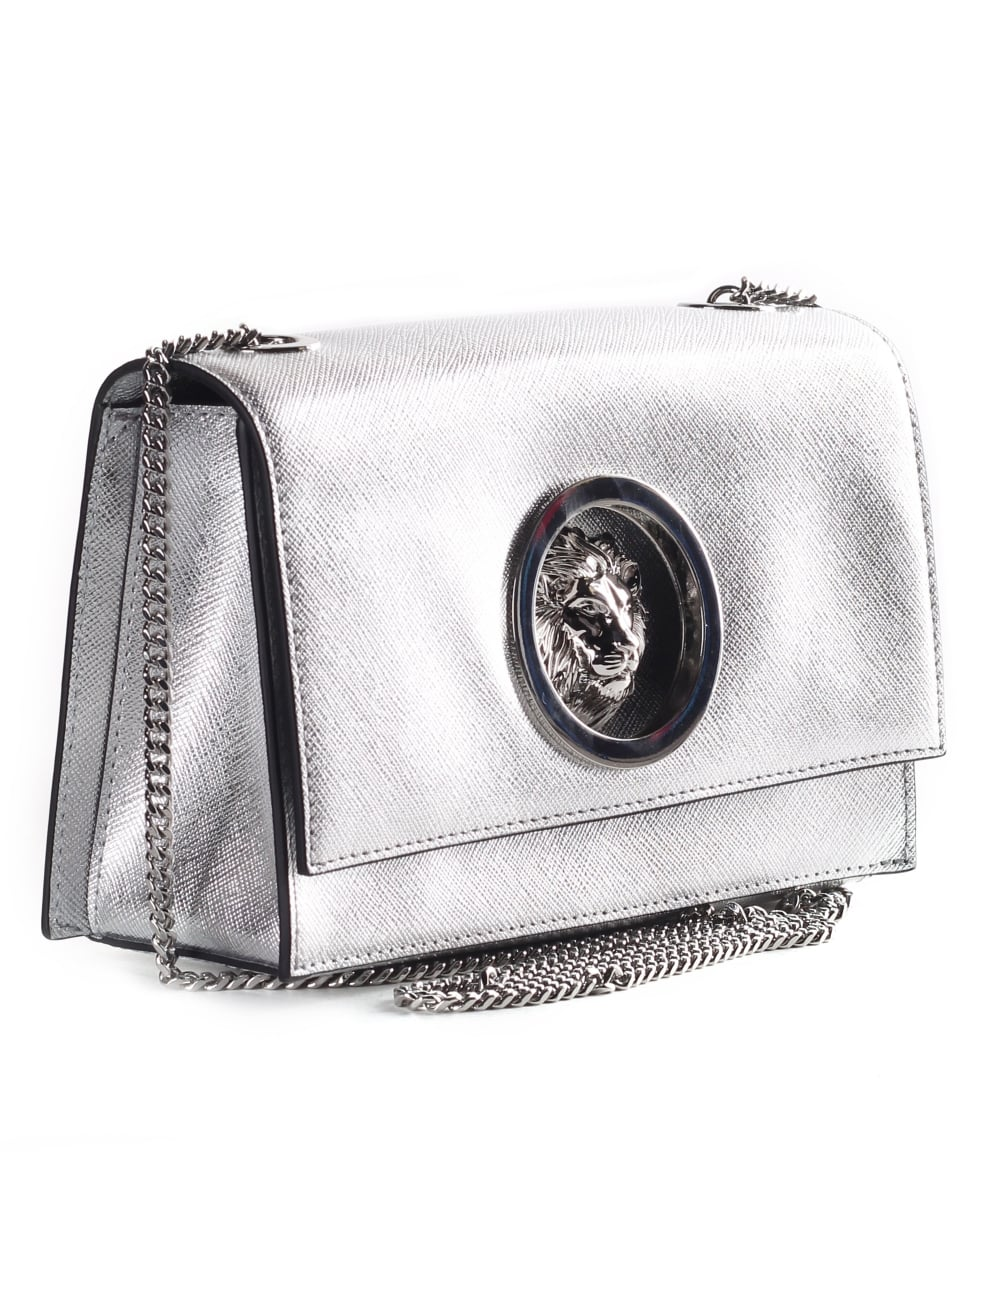 63f3e85ad4 Versus Versace Lion Head Women's Shoulder Bag